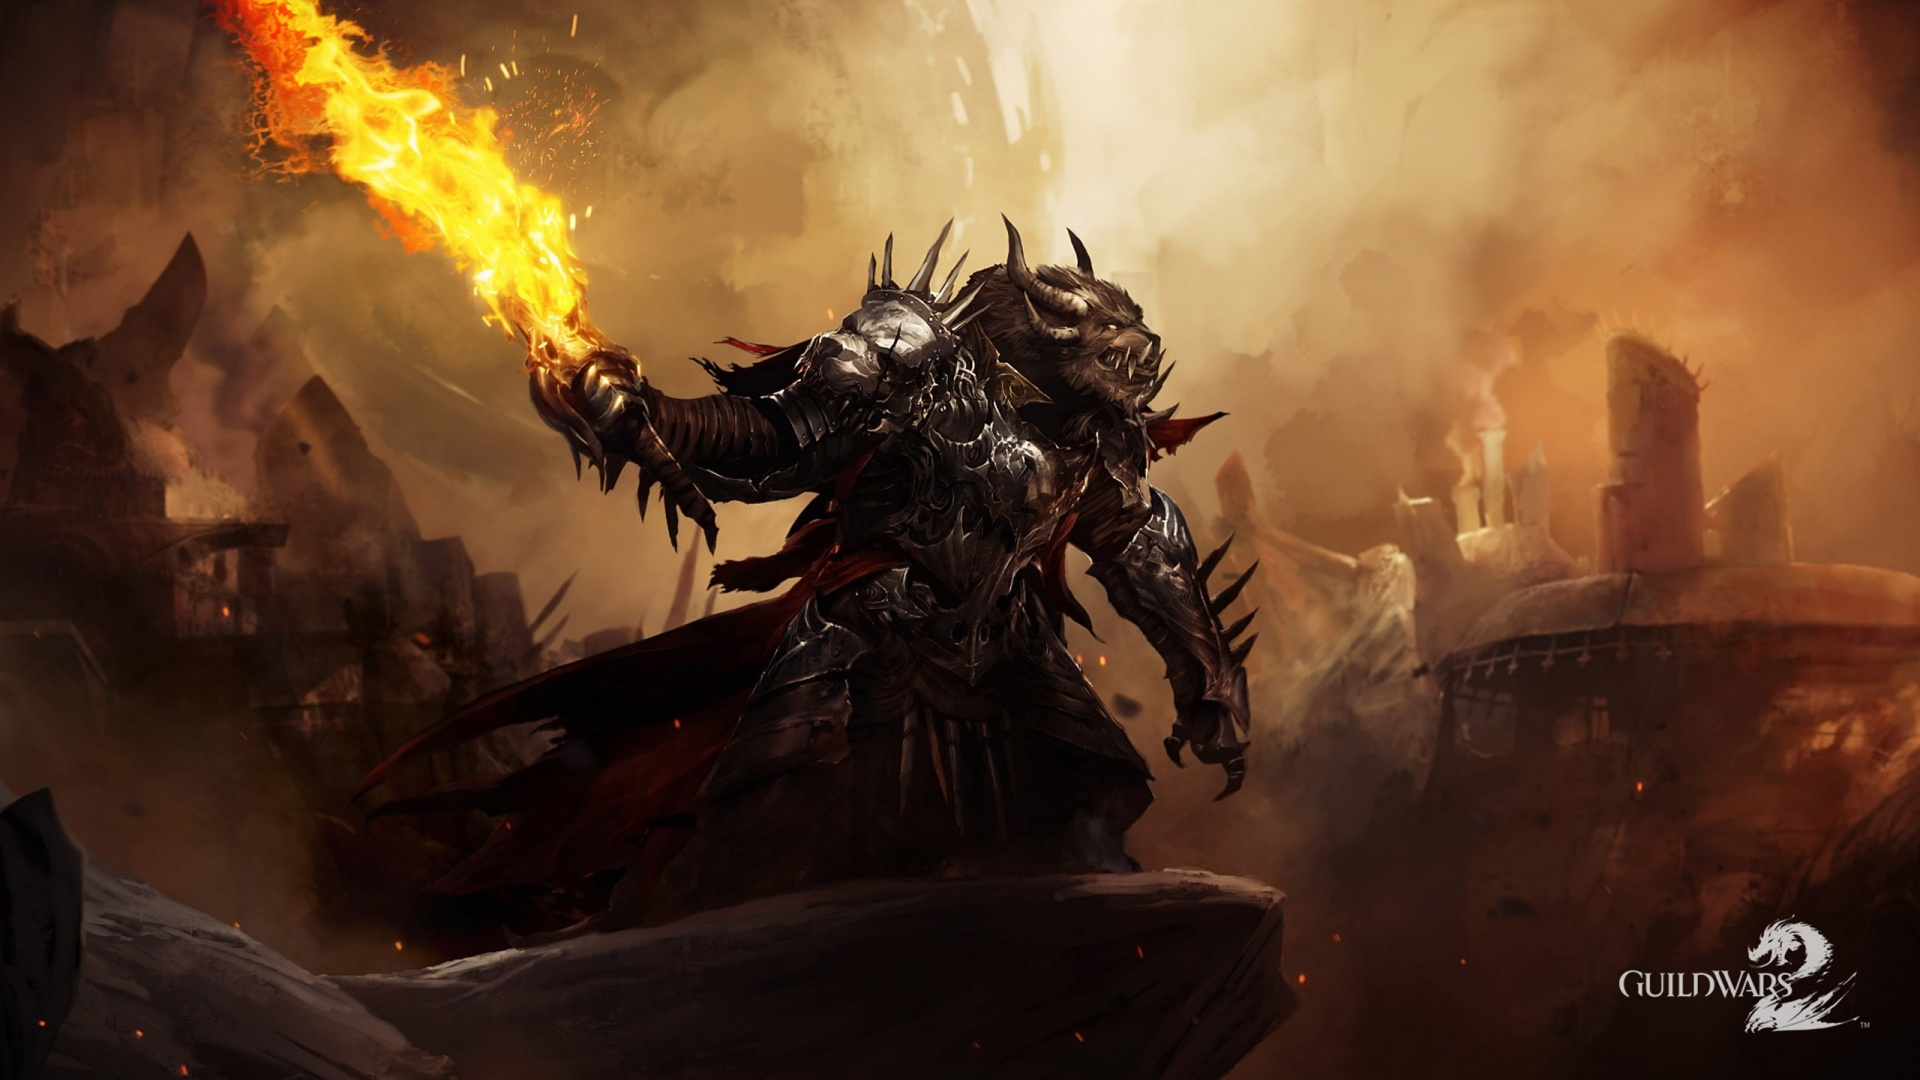 Guild wars 2 game   High Definition Wallpapers   HD wallpapers 1920x1080